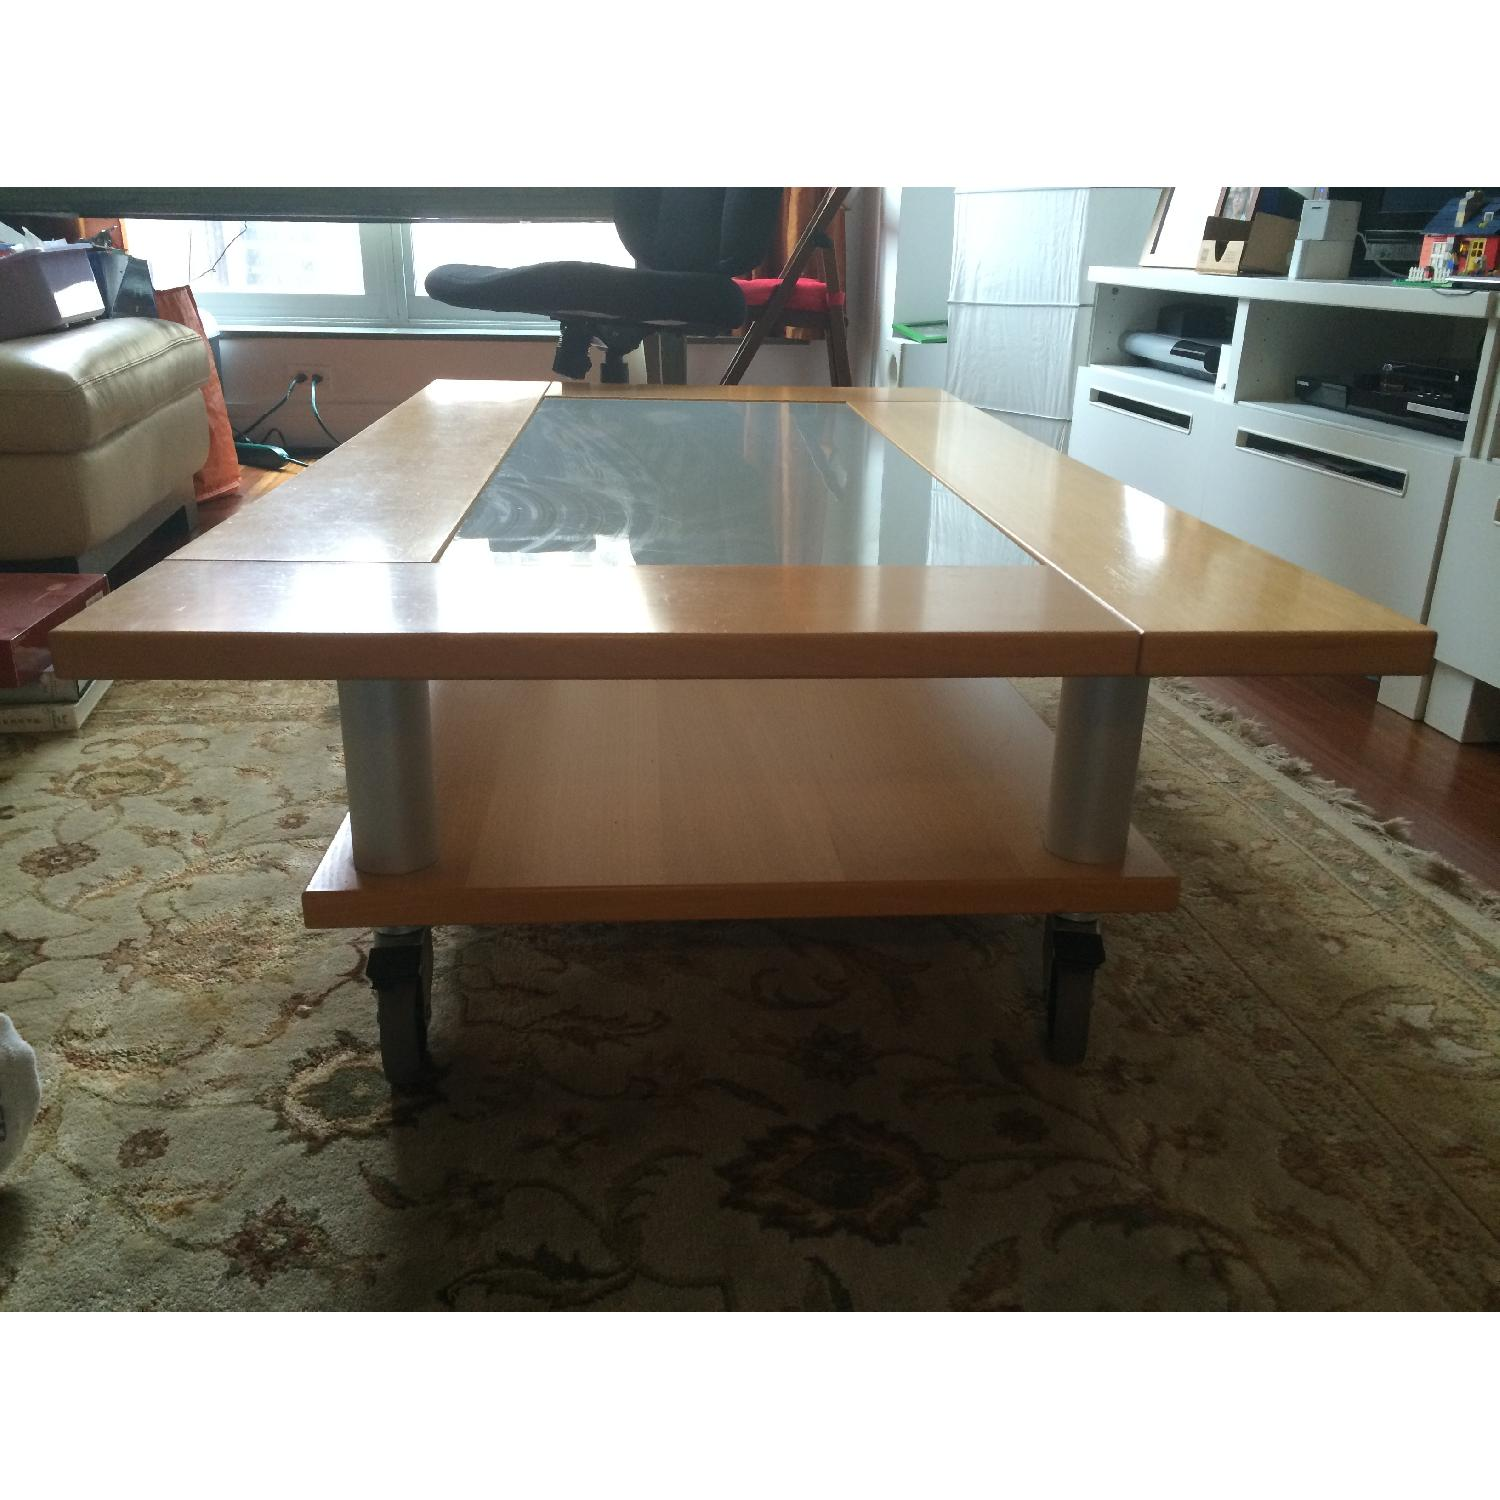 Two-Tier Coffee Table on Wheels - image-3